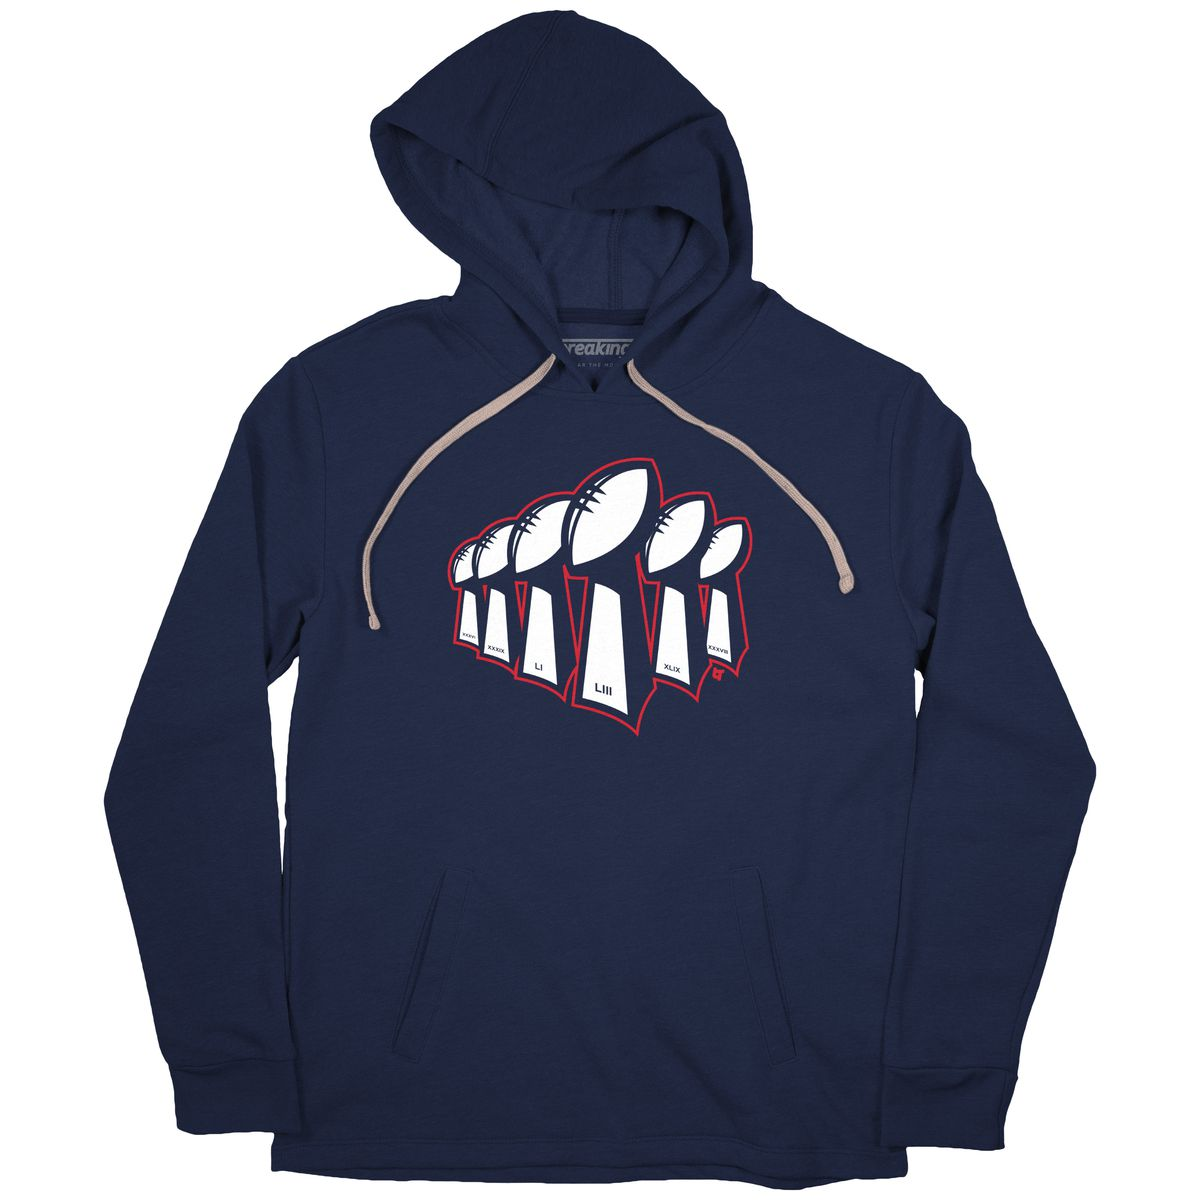 3aba8bd34 ... Super Bowl sweatshirt and jacket. I Just Like Winning Hoodie for  48  BreakingT. New England 6x Champs Hoodie for  48 BreakingT